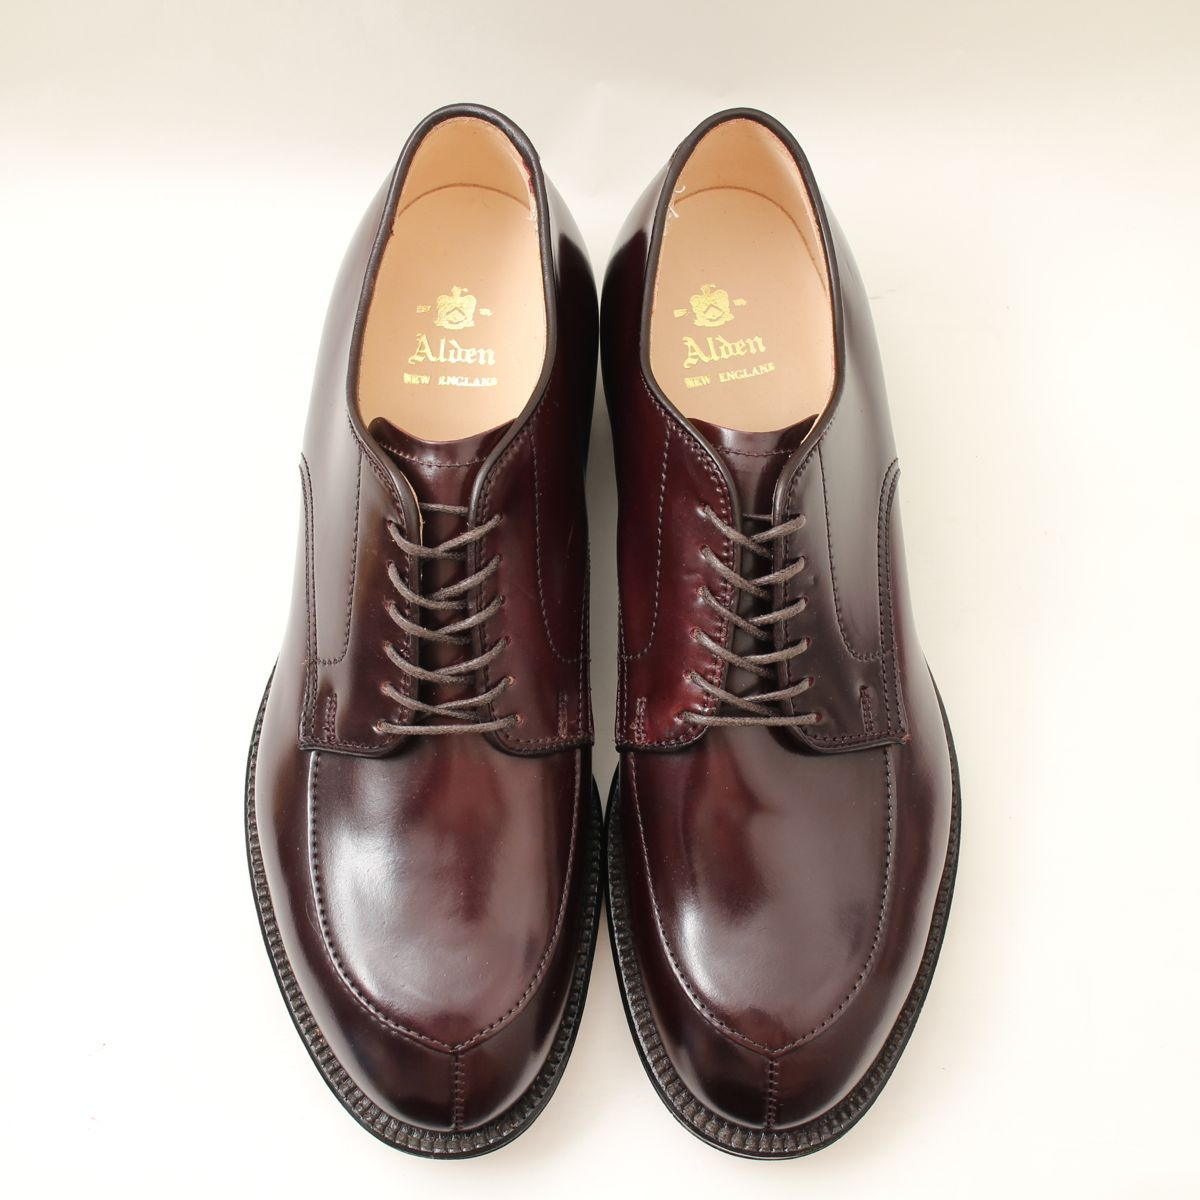 2016-05-business-shoes25